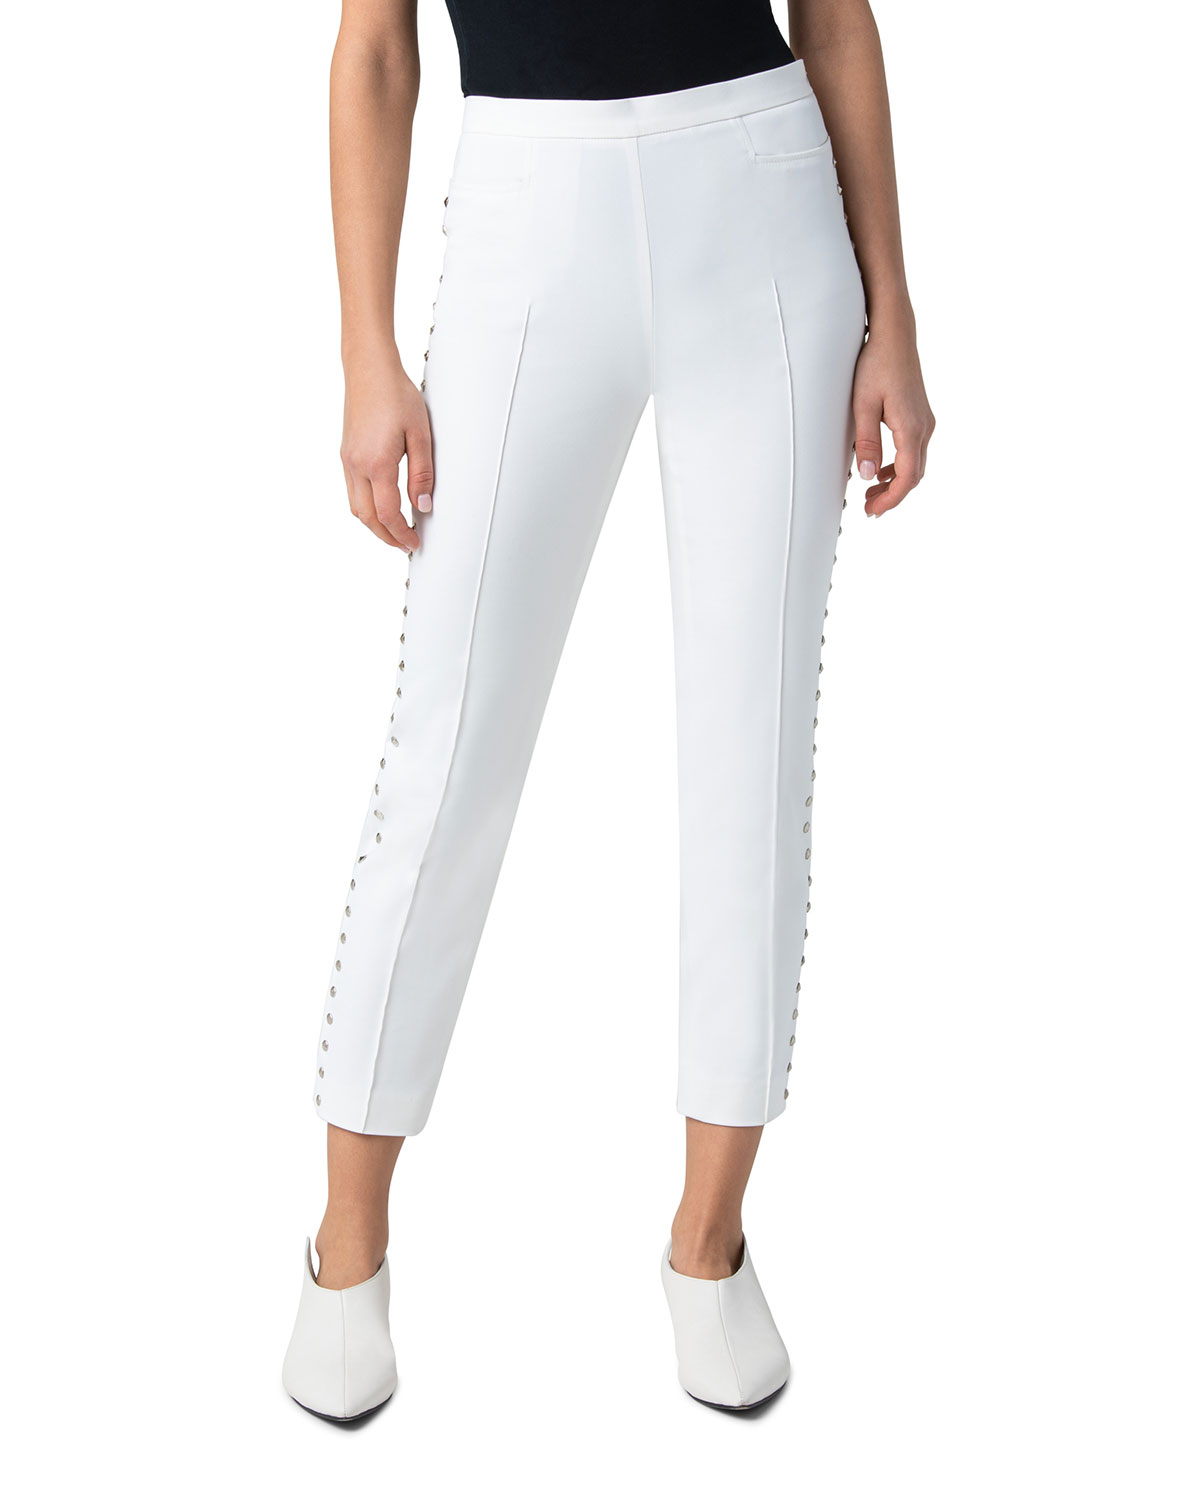 Franca Cotton Studded Cropped Pants